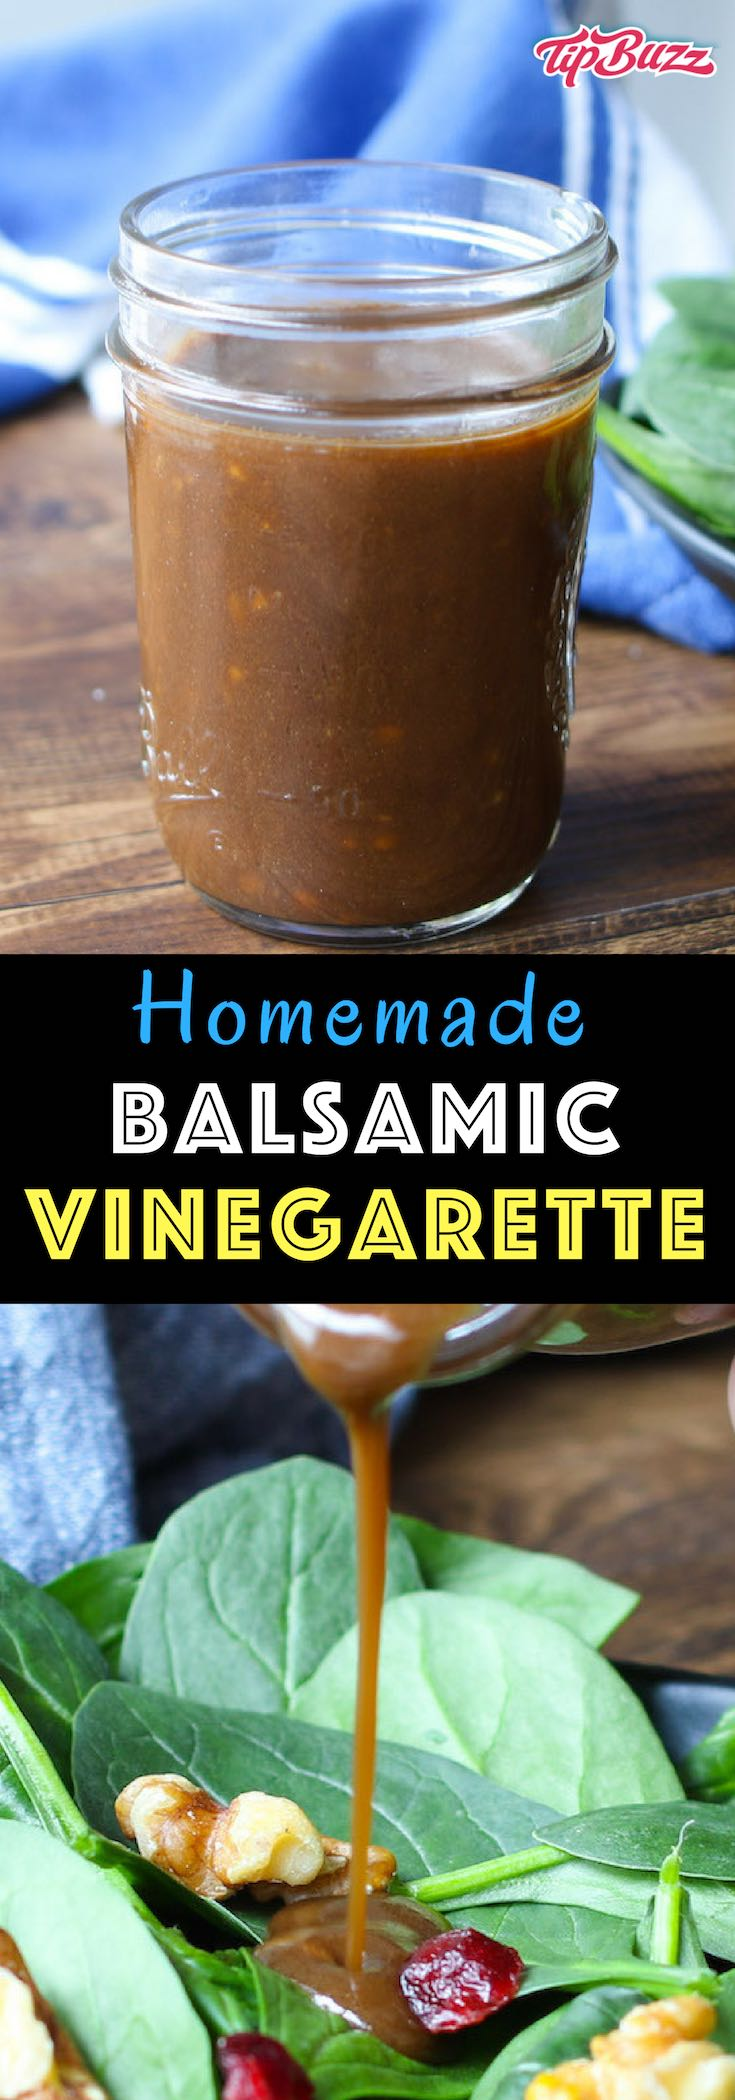 Easy balsamic vinaigrette works as a salad dressing, dipping sauce and more. Easy to make with balsamic vinegar, olive oil, mustard, minced garlic, salt and pepper.